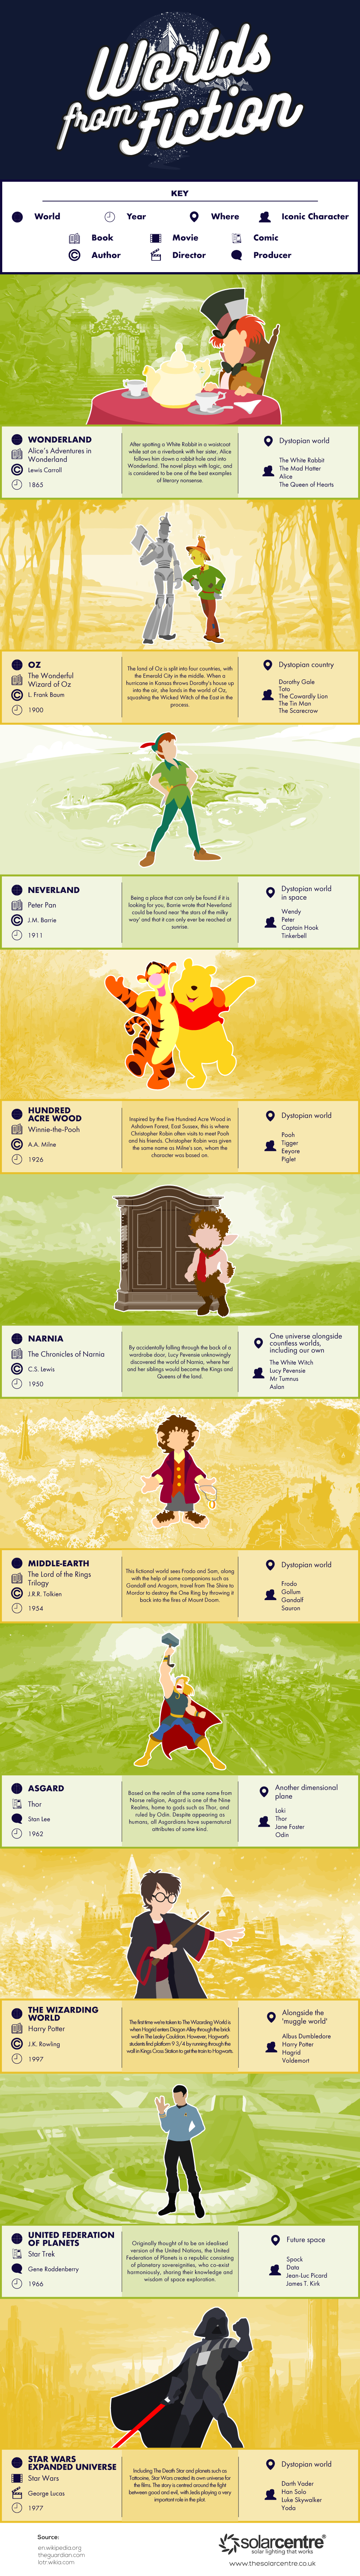 Worlds From Fiction #Infographic